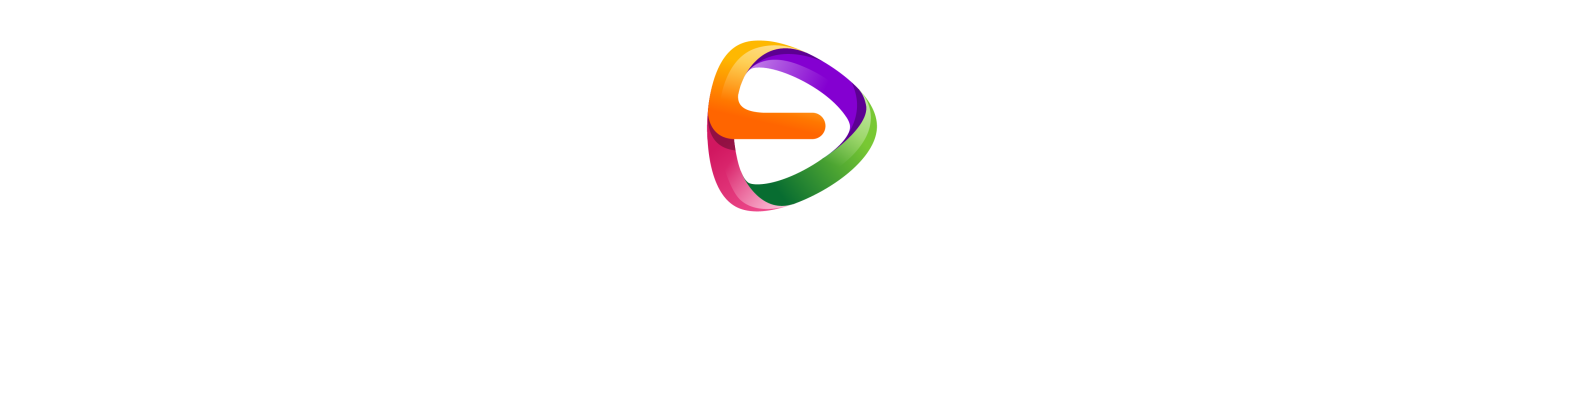 Virtual Trade Show Platform | Virtual Expo Halls | Registration | Video Chat | Exhibitor Connect